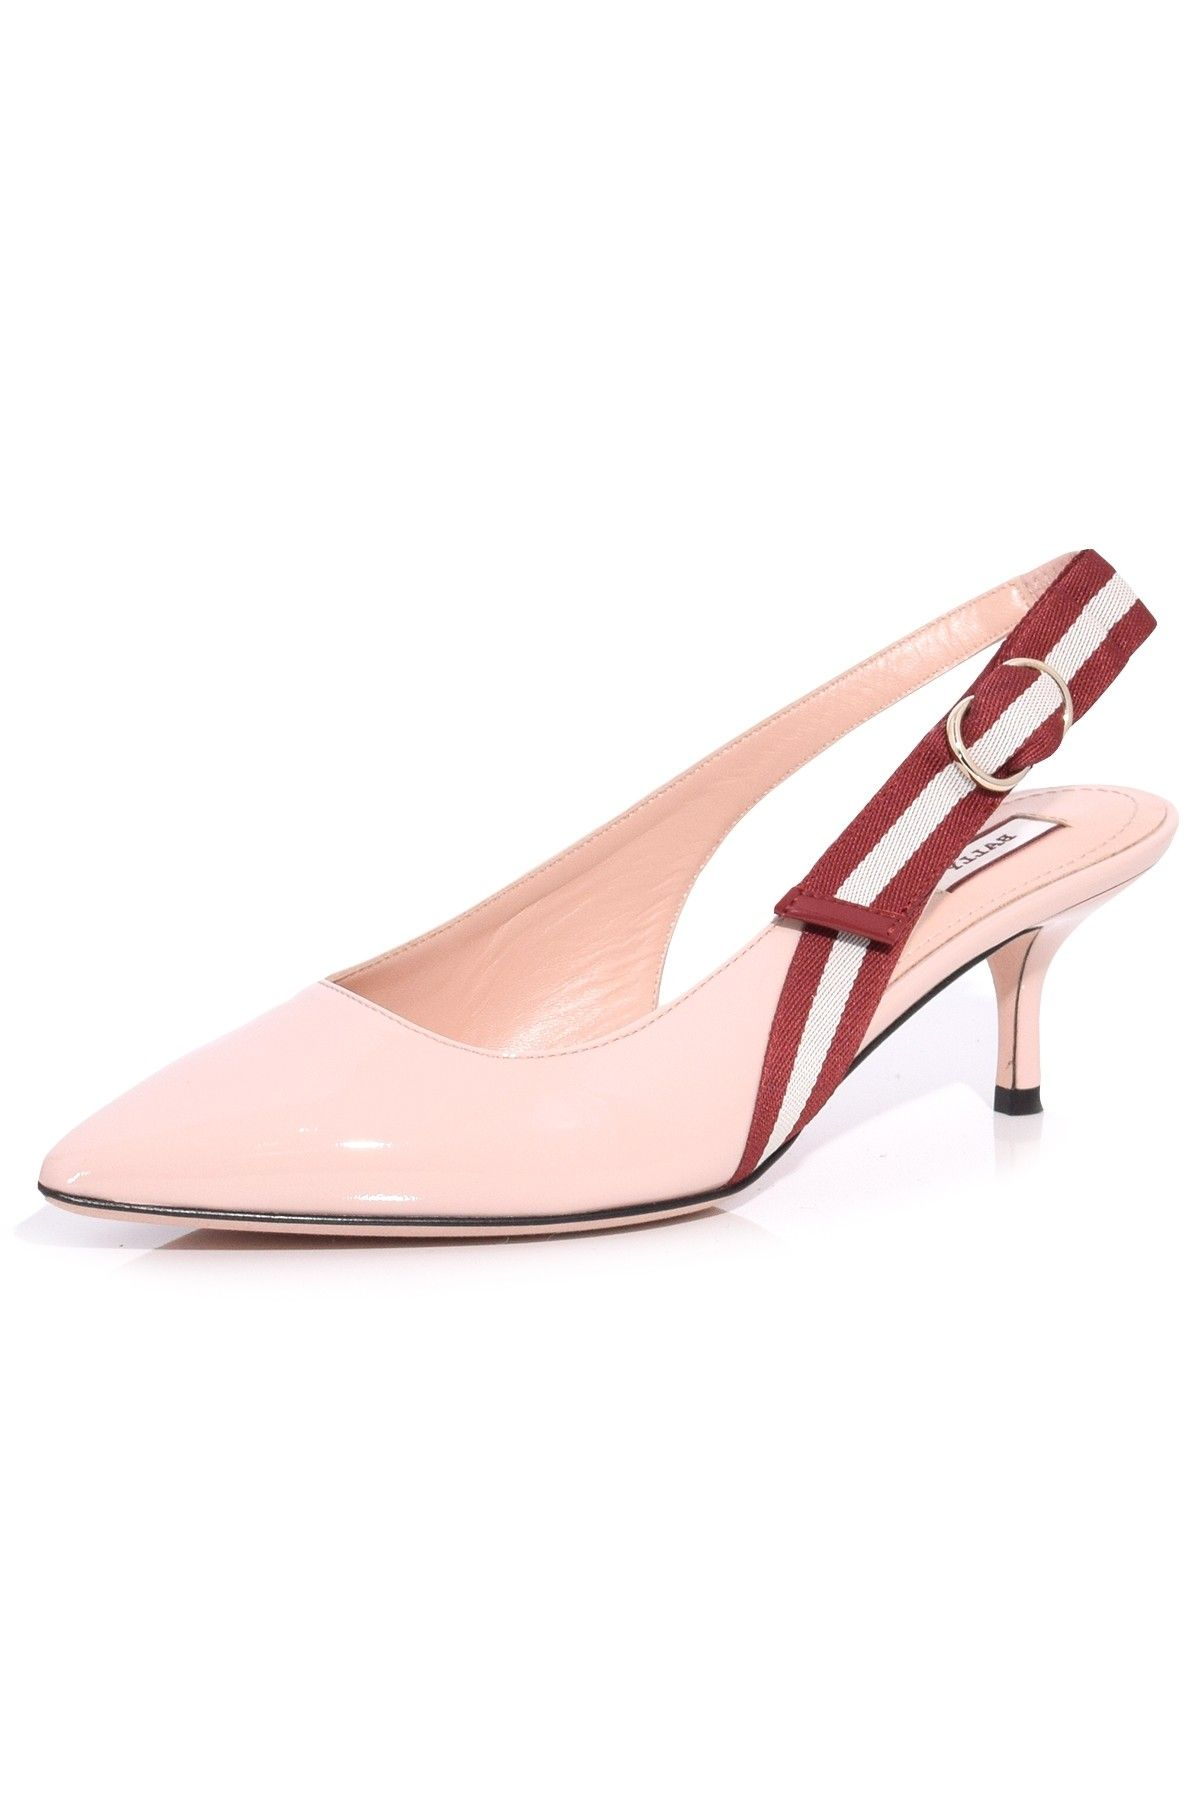 0c3eb7941e6 Alice Slingback Pump in Blush in 2019